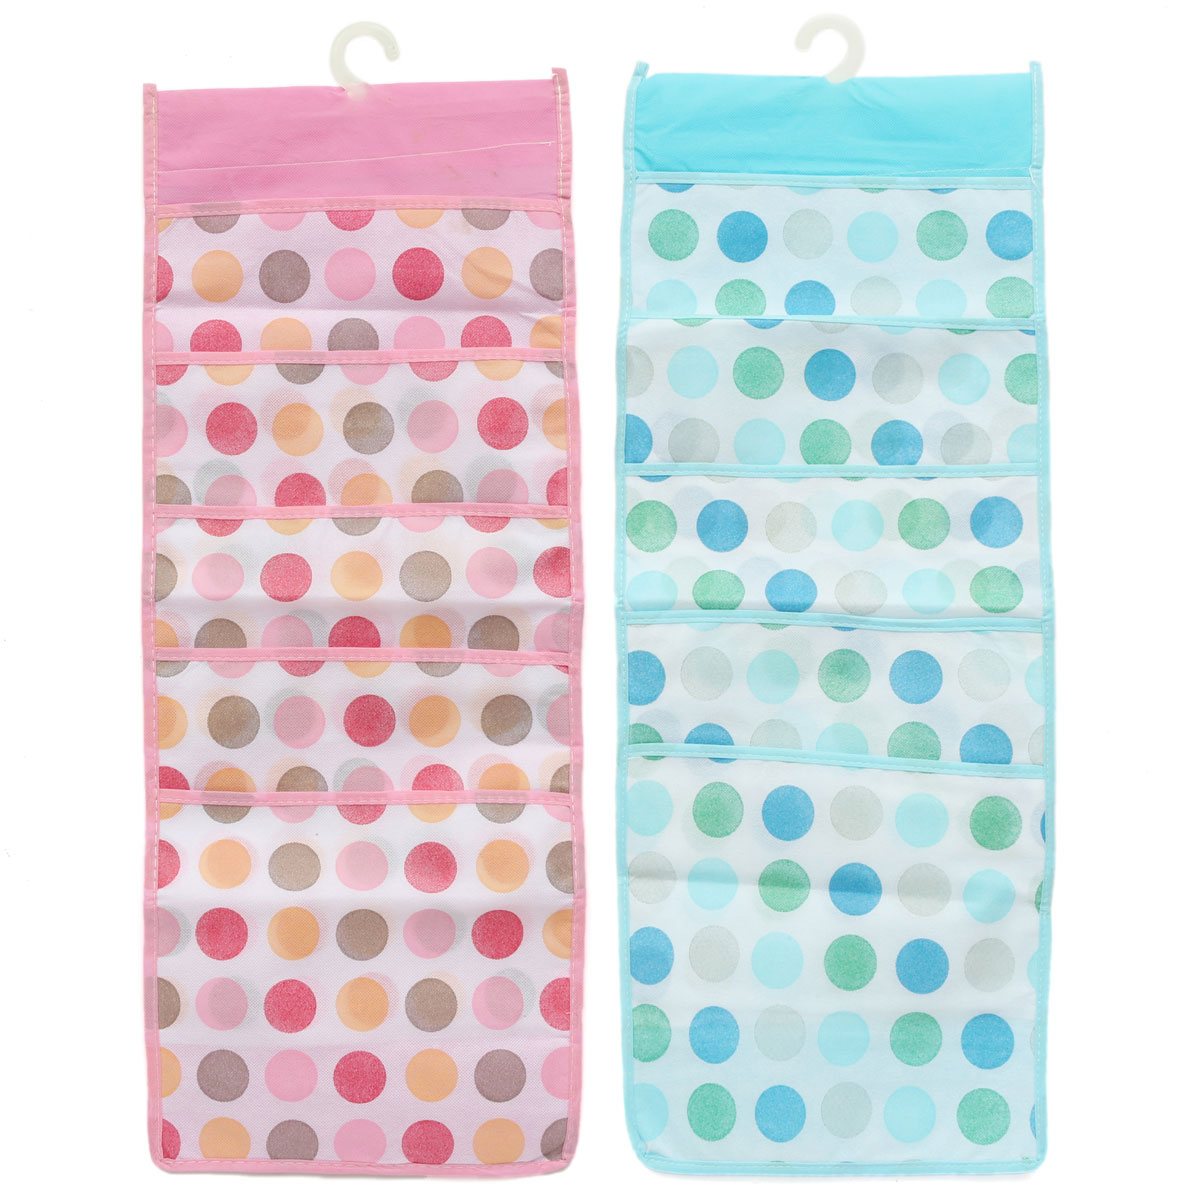 5 Layers Pink Blue Dots Socks Hang Underpants Nonwoven Plastic Hook Transparent Breathable Shirts Storage Bags